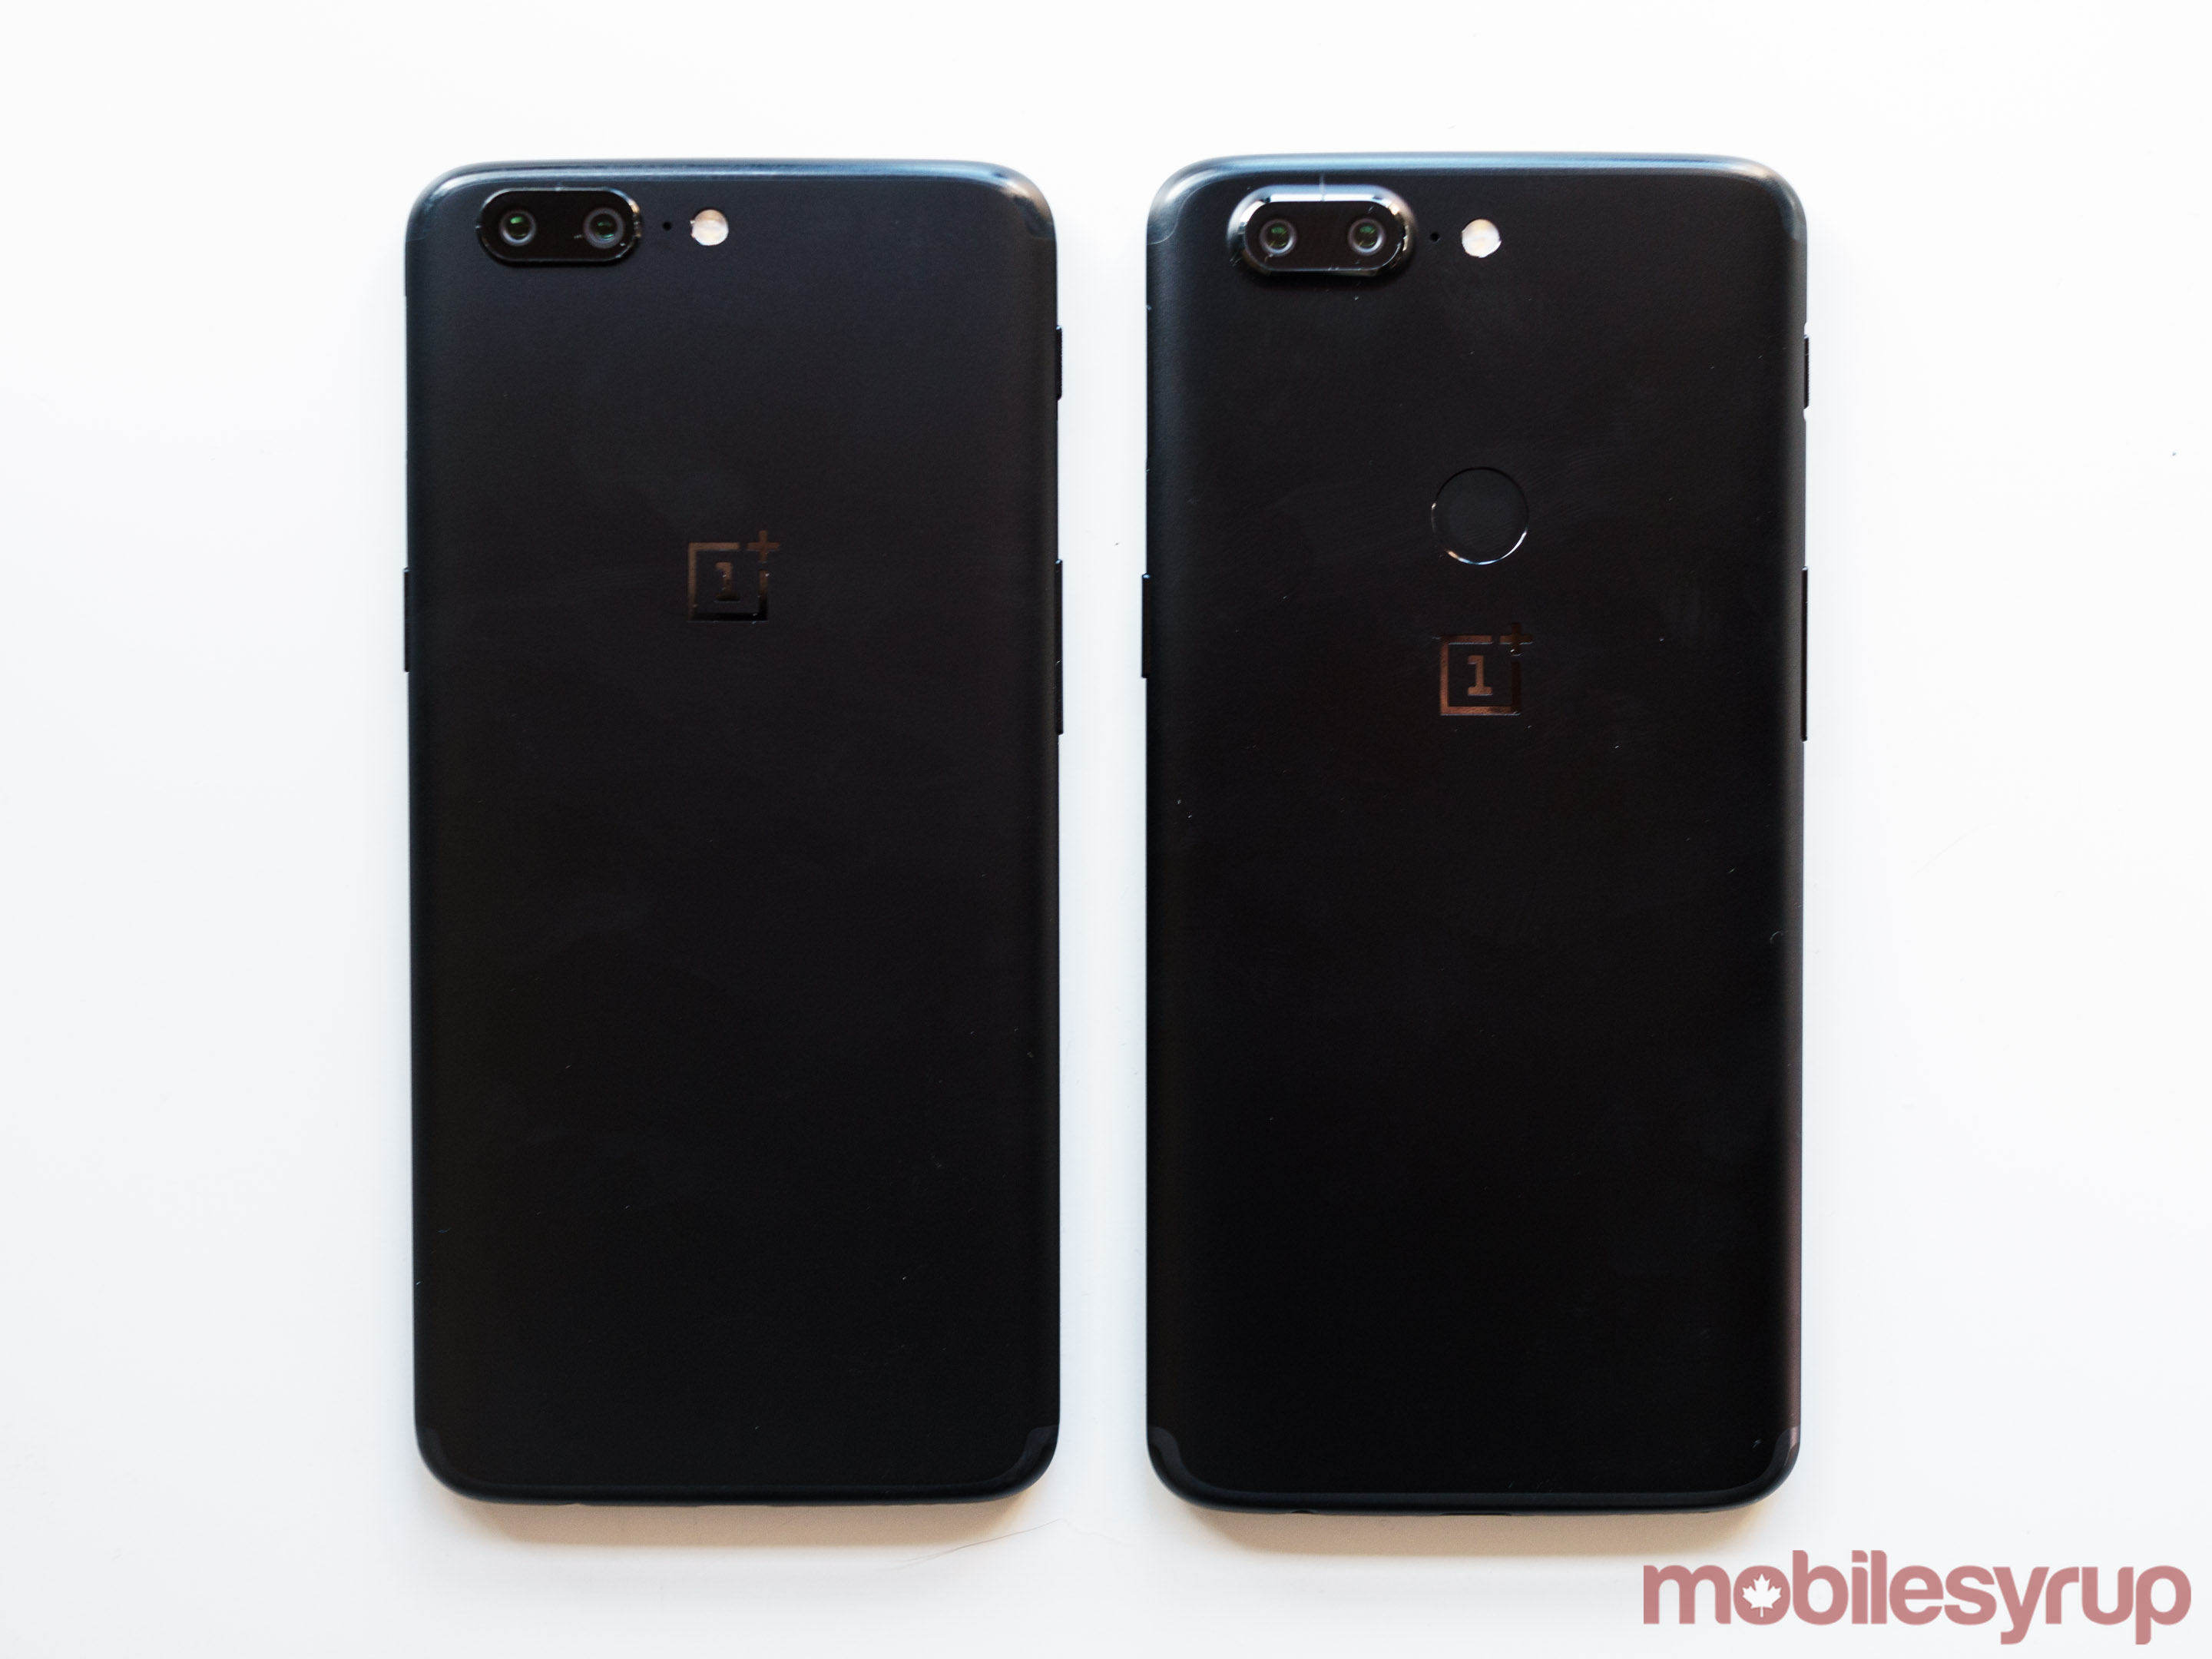 A comparison shot of the back of the two phones